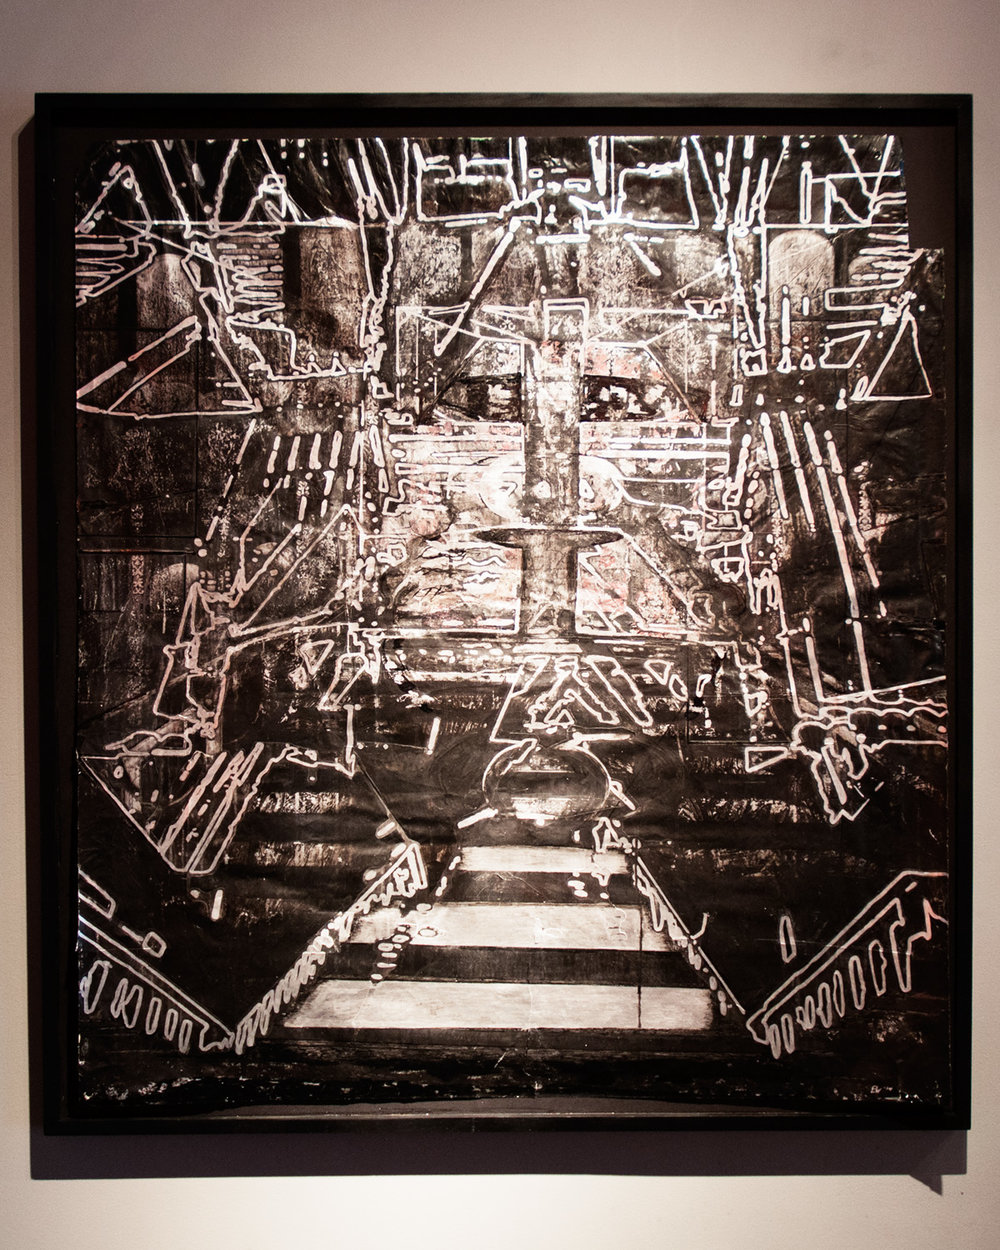 Tenebrae Spatio III, Black Altar silver foil, india ink, acrylic, and collage 62 x 55 inches EWA005